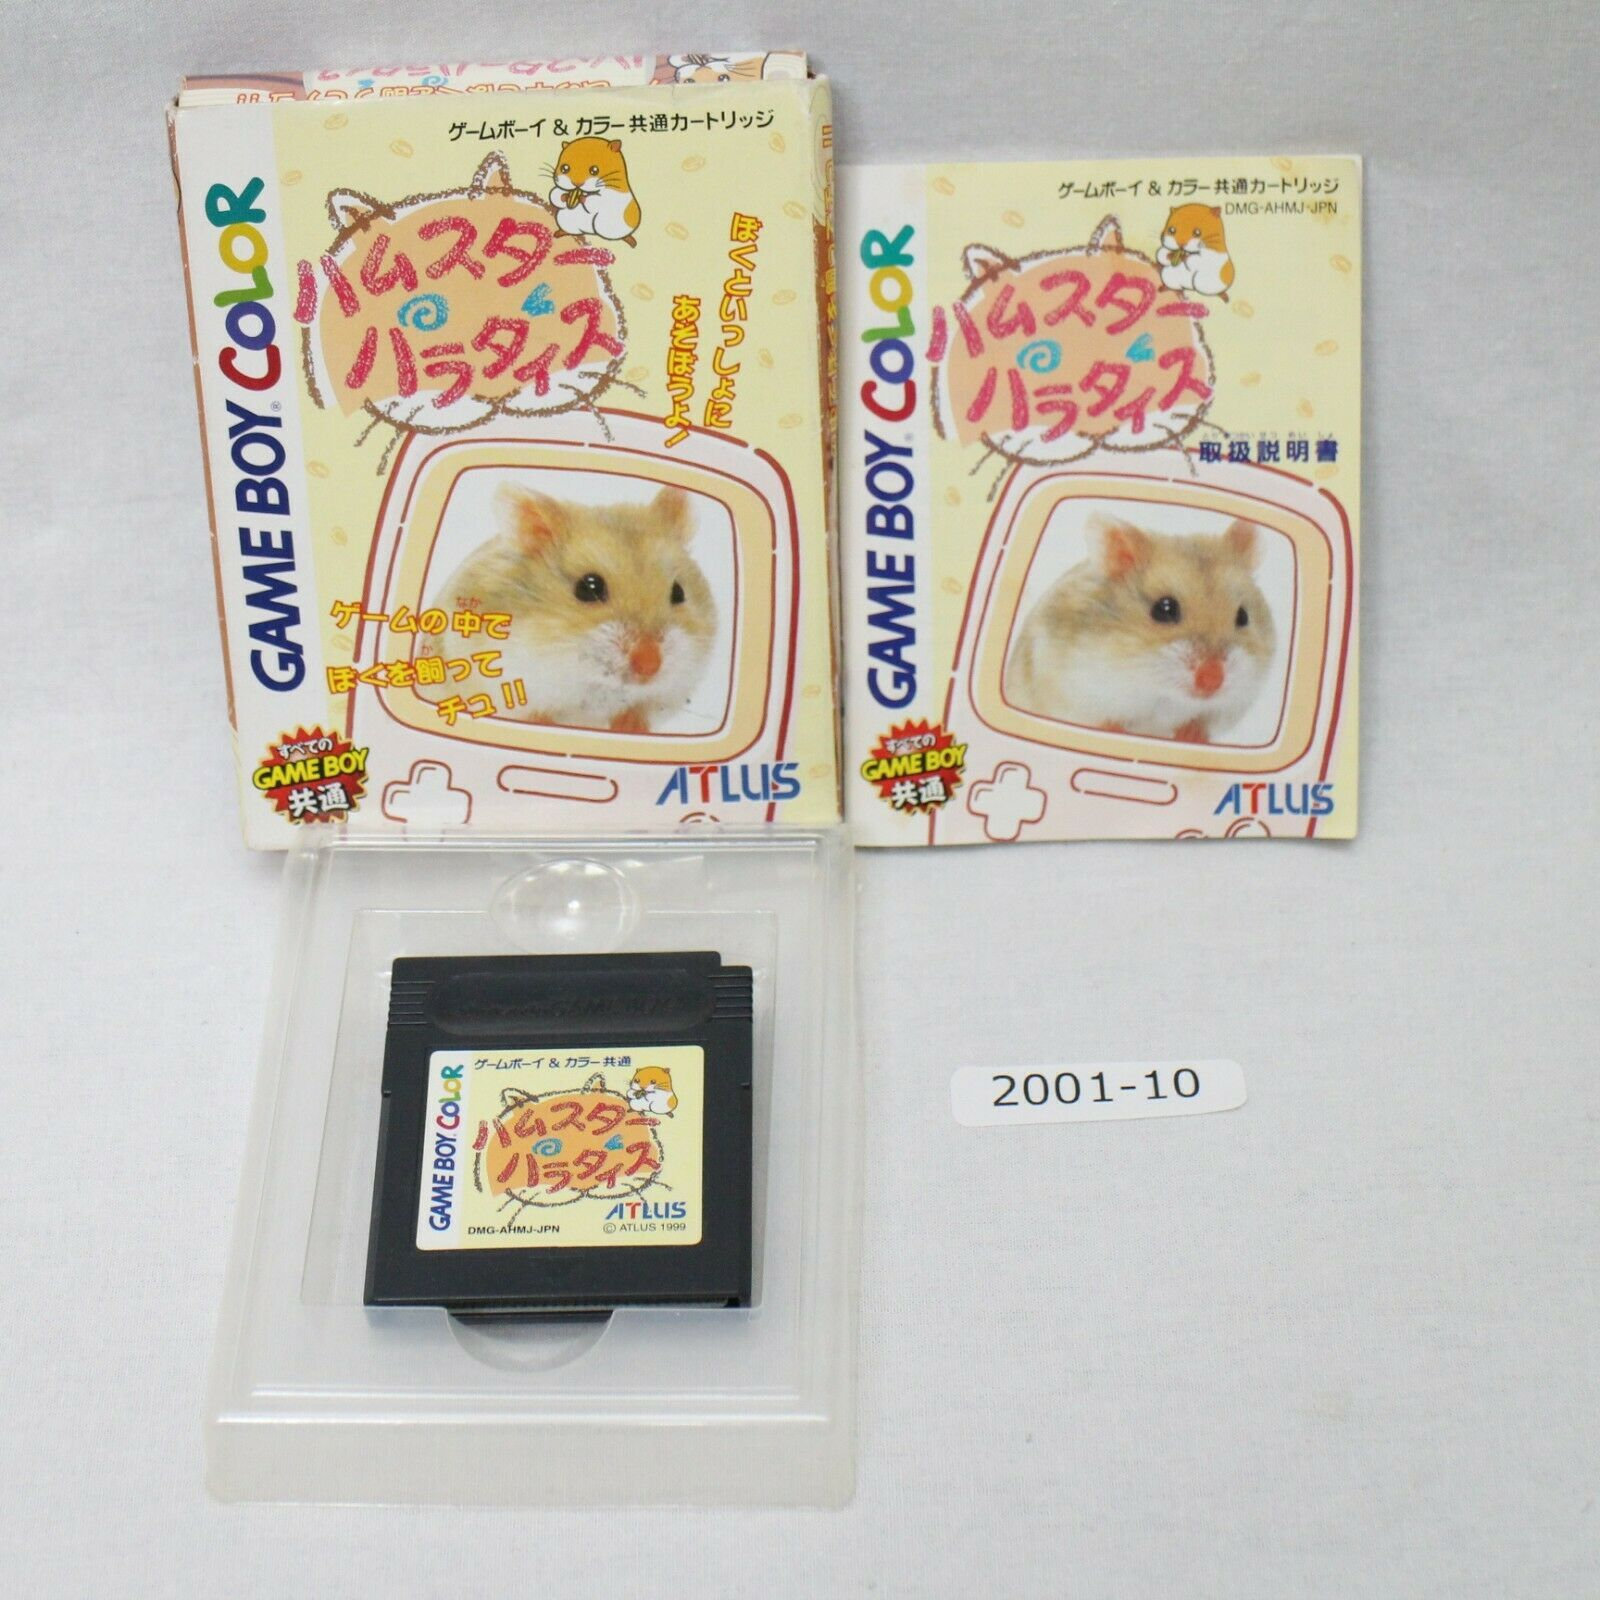 Primary image for Nintendo Gameboy Hamster Paradies Atlus Packung Aktiv Japan 2001-010